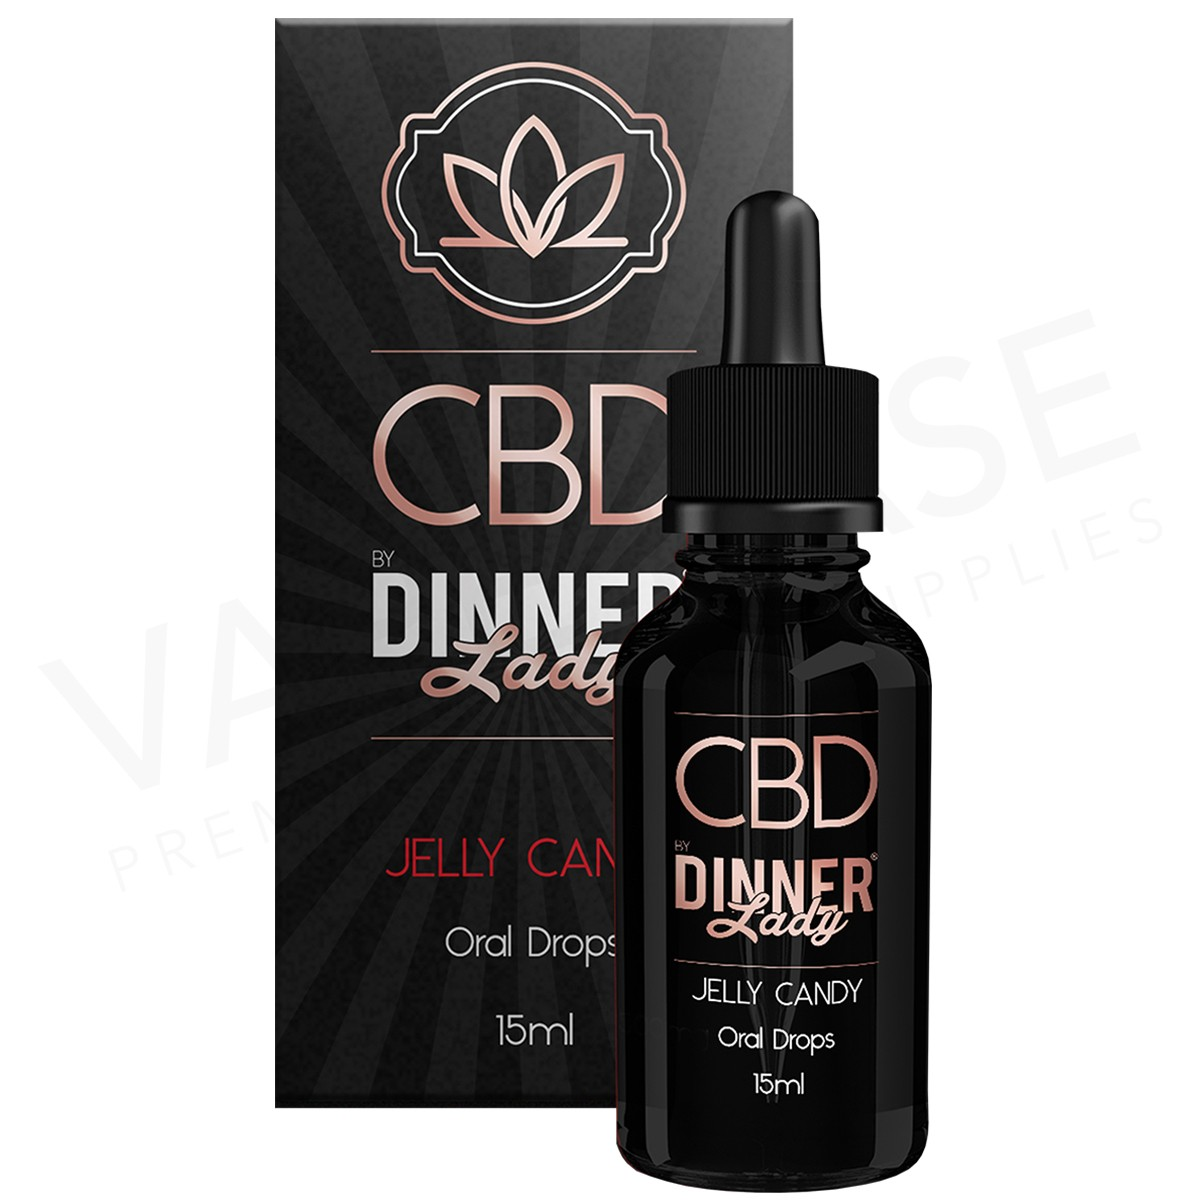 DINNER LADY - CBD DROPS JELLY CANDY (250mg)